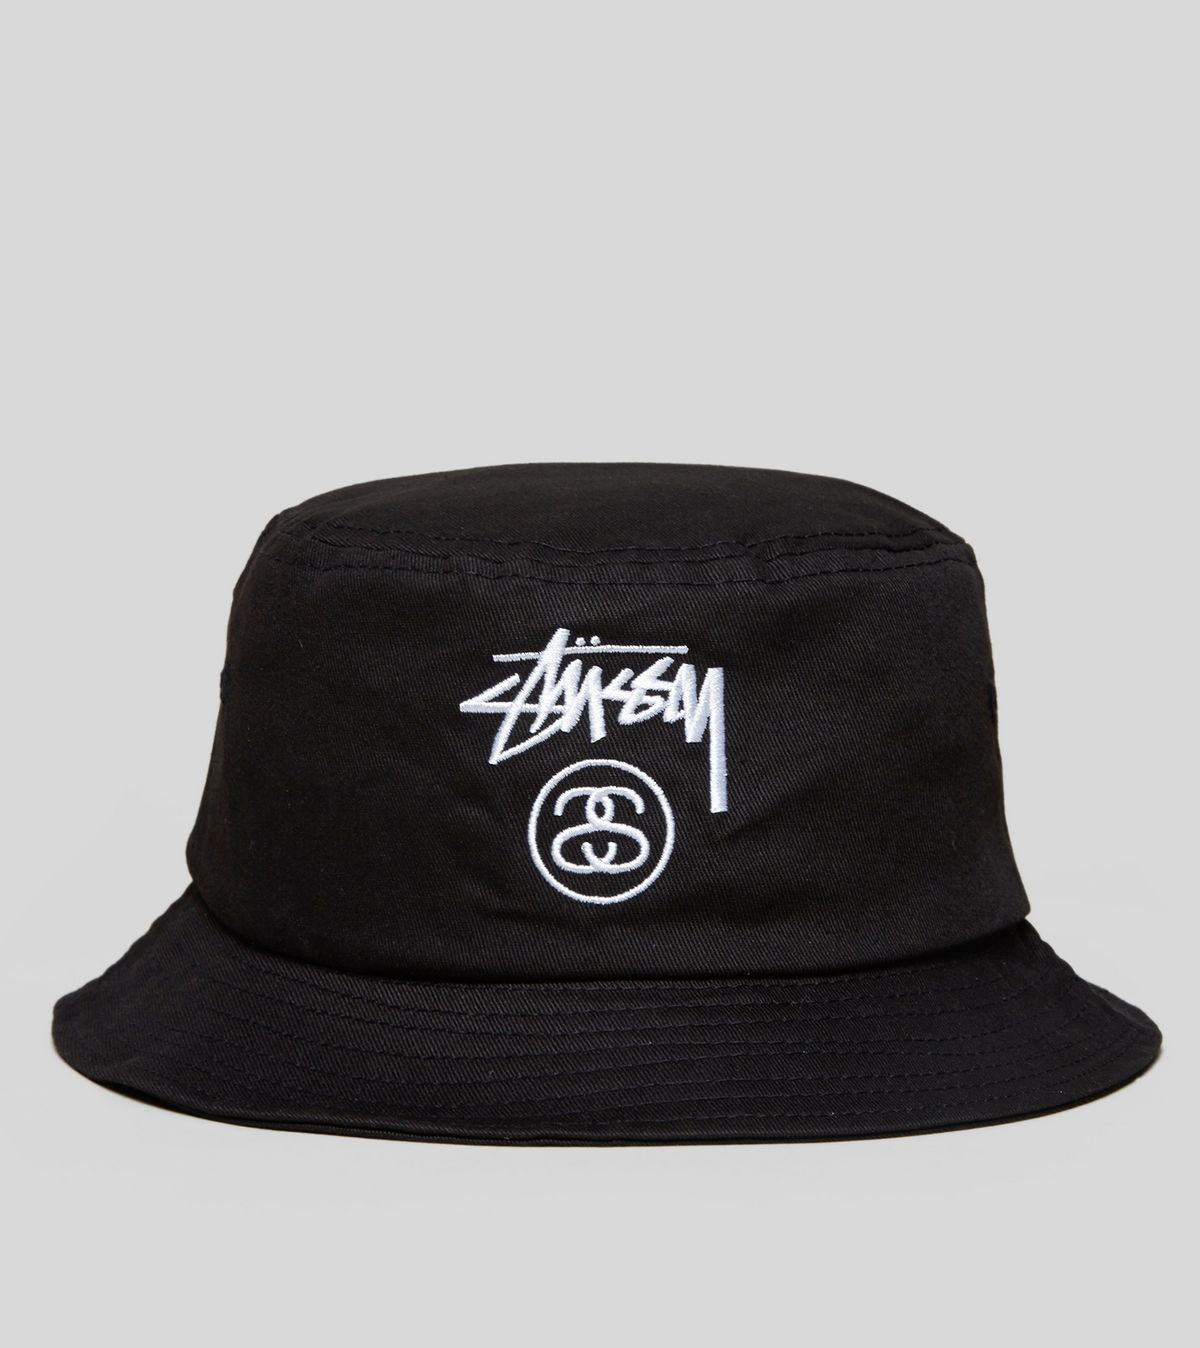 stussy bucket hat amazon - HD 1200×1348